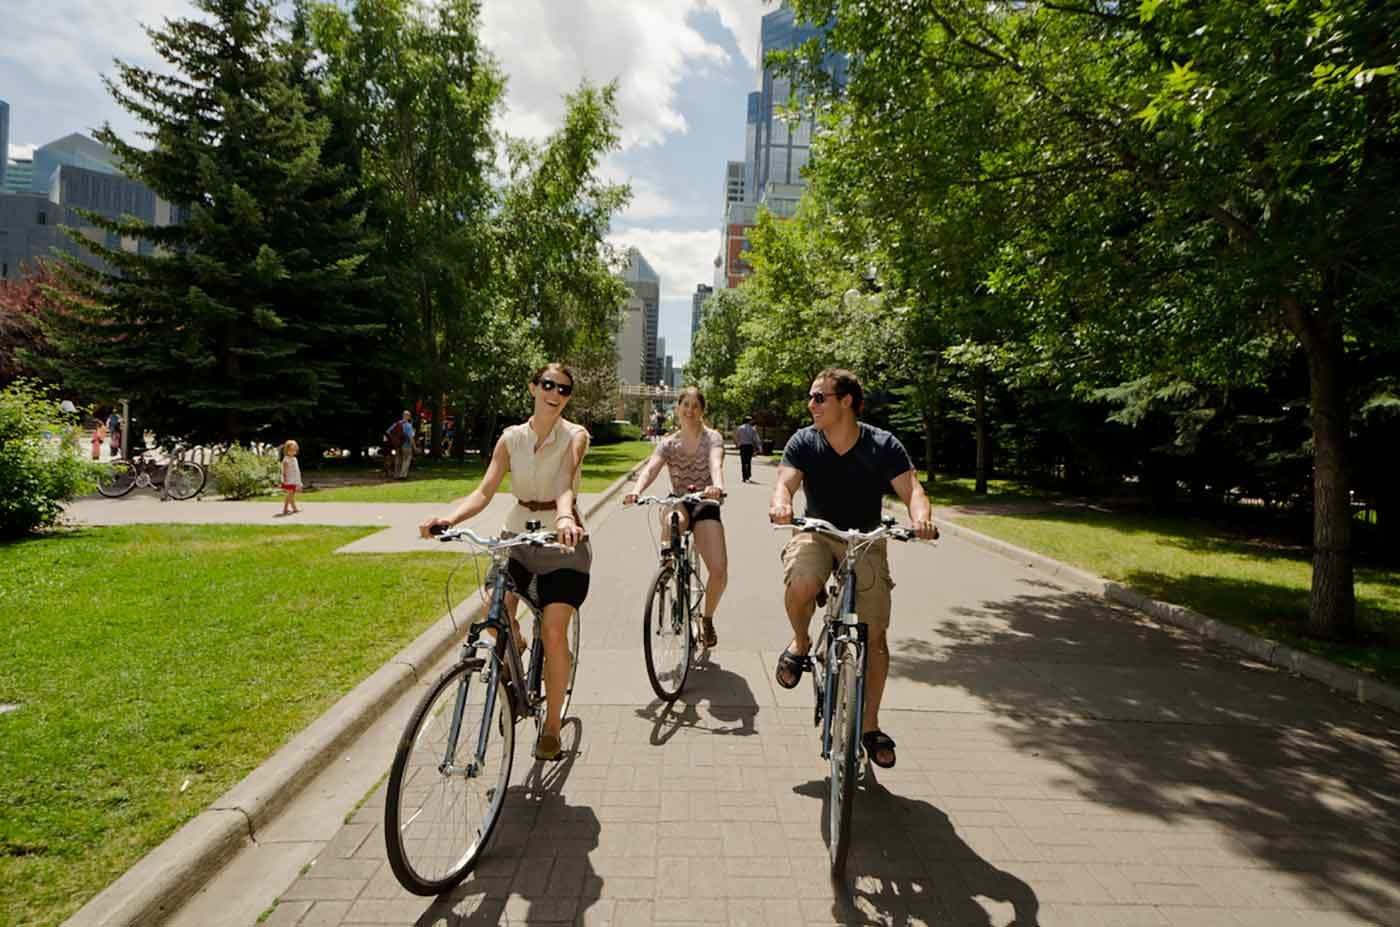 Calgary - cycling in a park